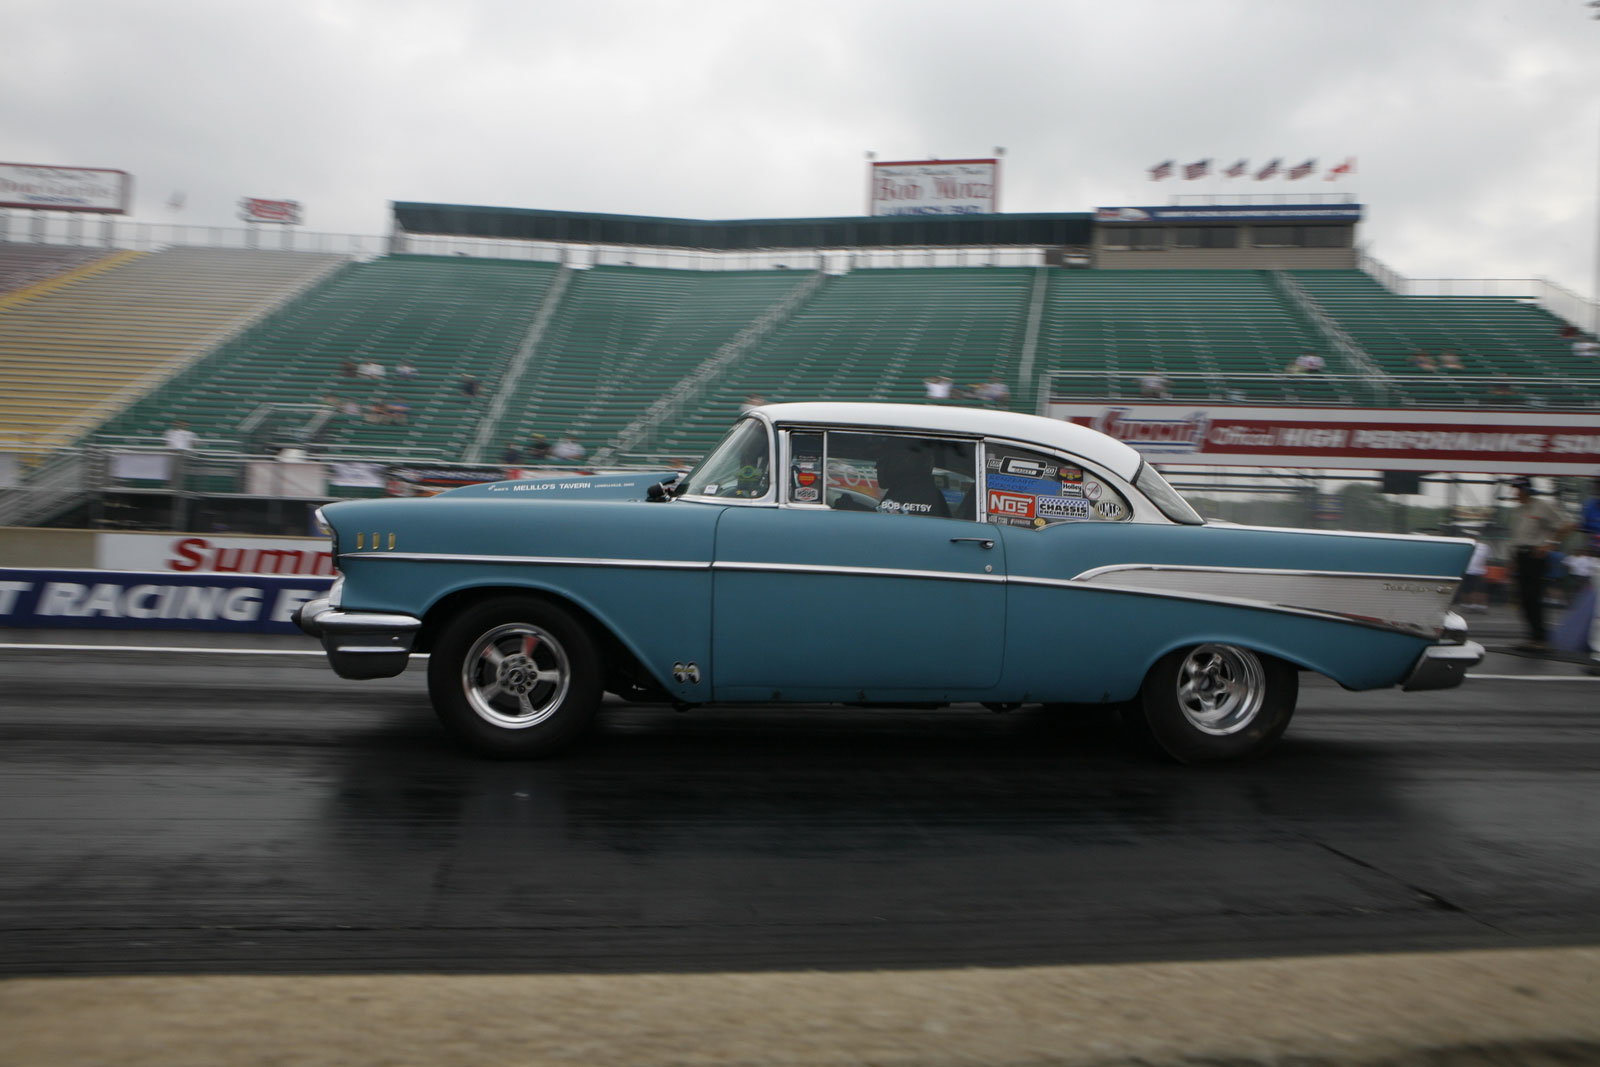 Sucp_1006w_11 Super_chevy_show_2010 Norwalk_ohio